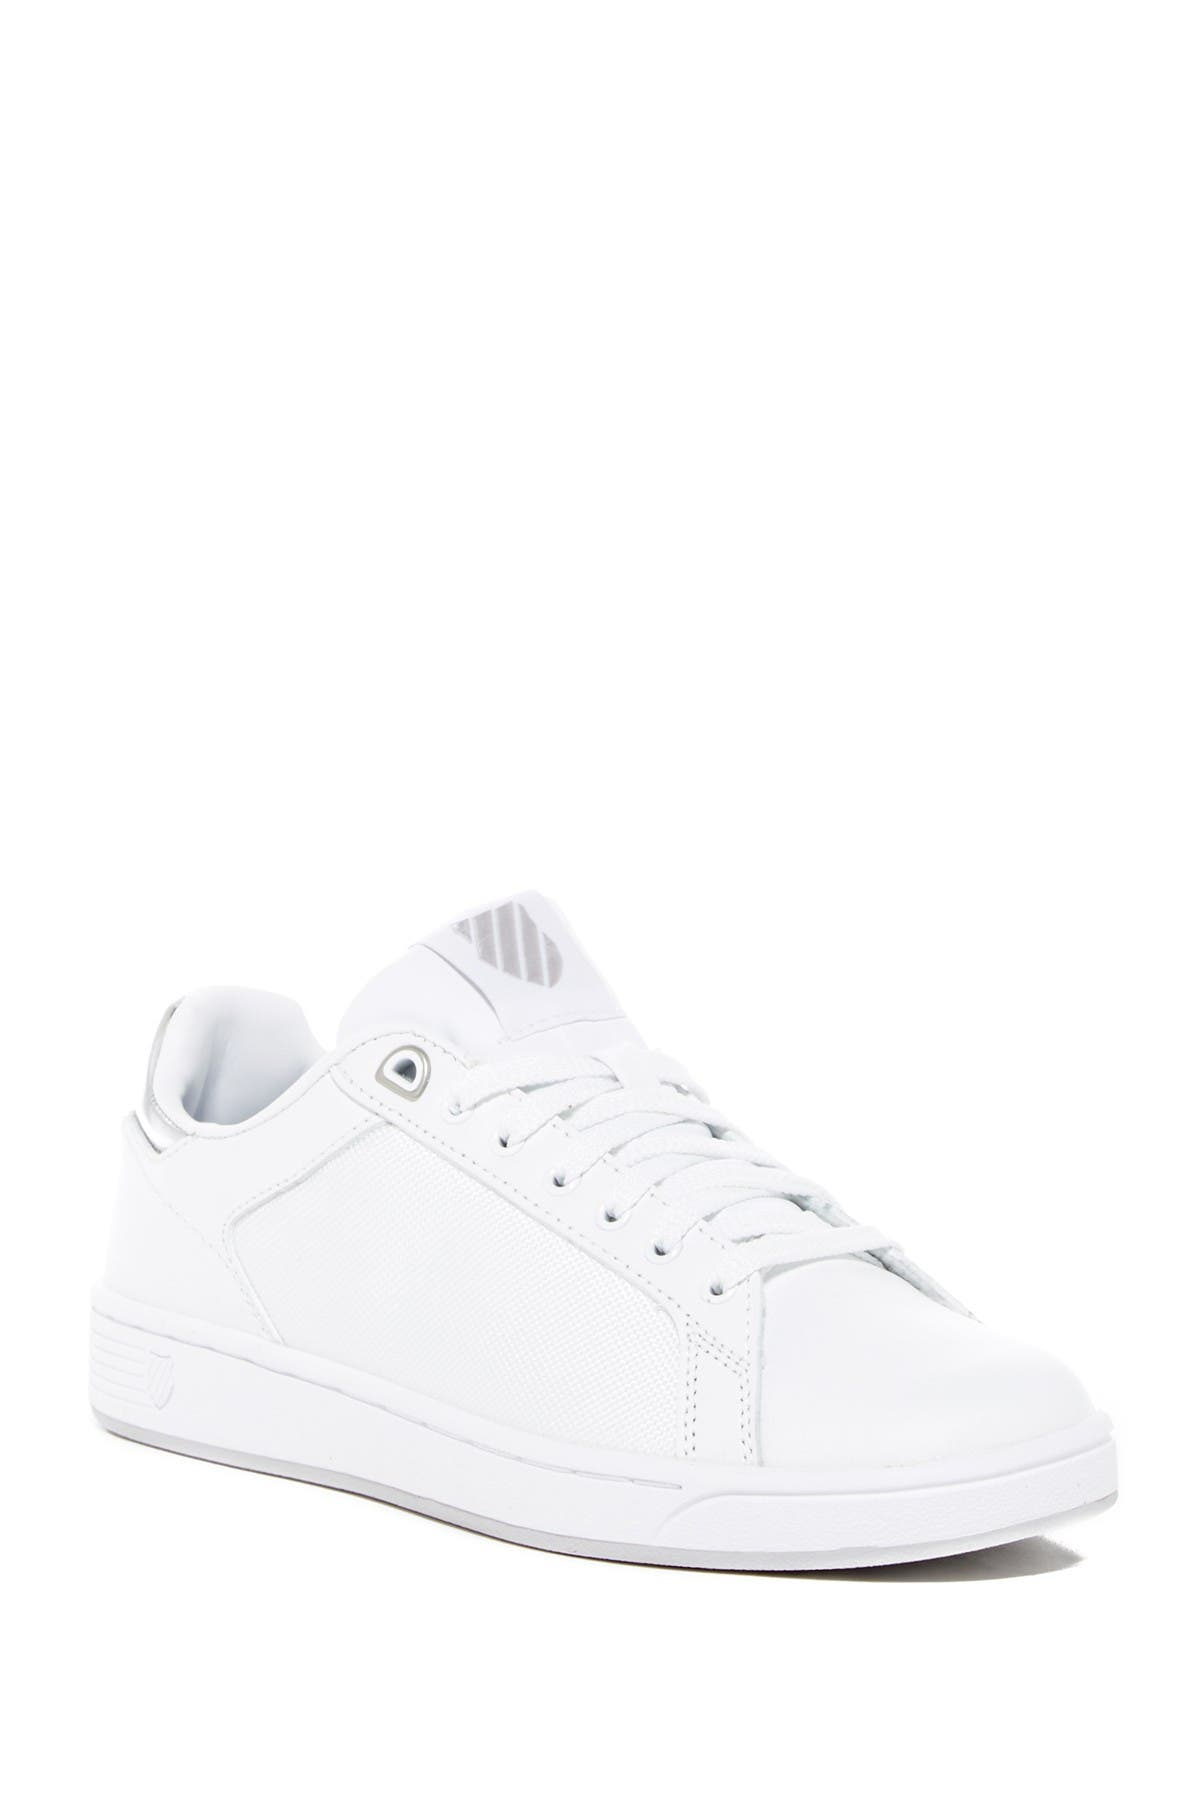 Image of K-Swiss Clean Court CMF Sneaker